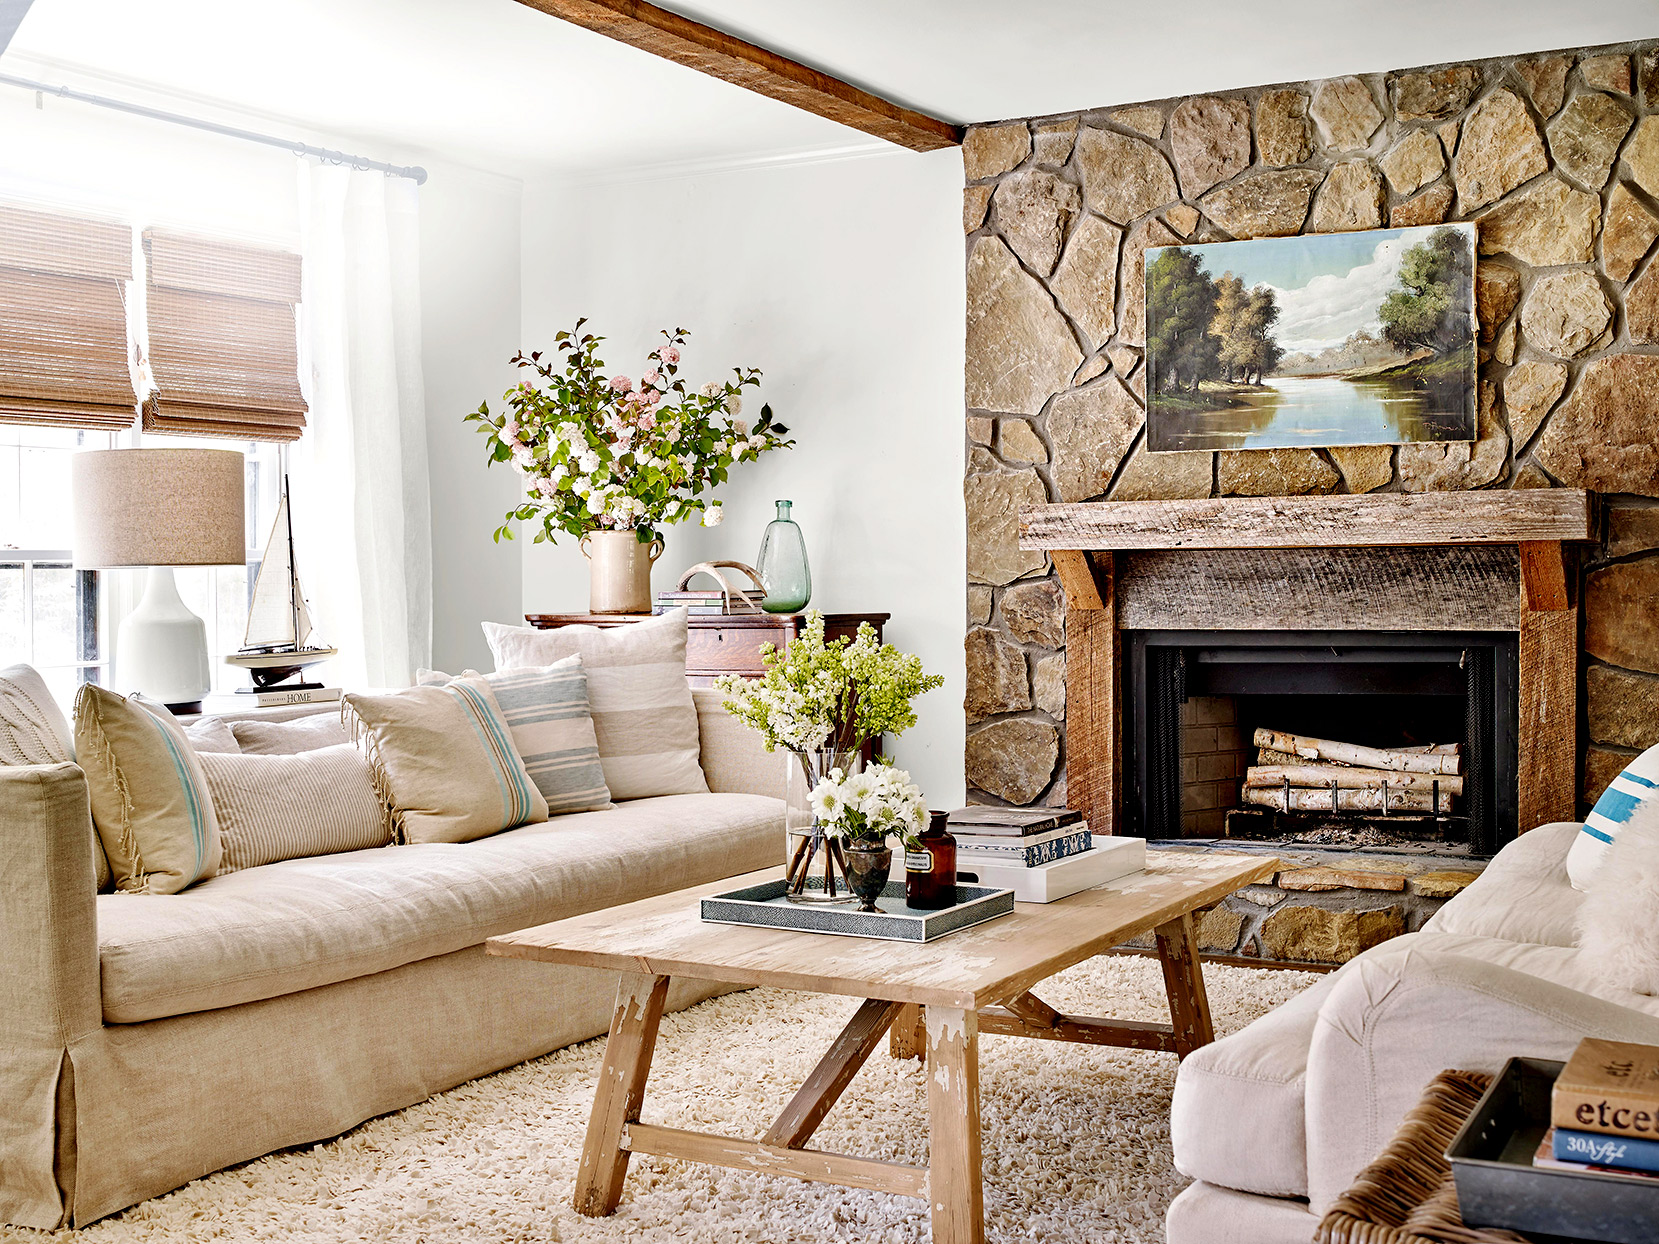 Living room with stone fireplace and white couches